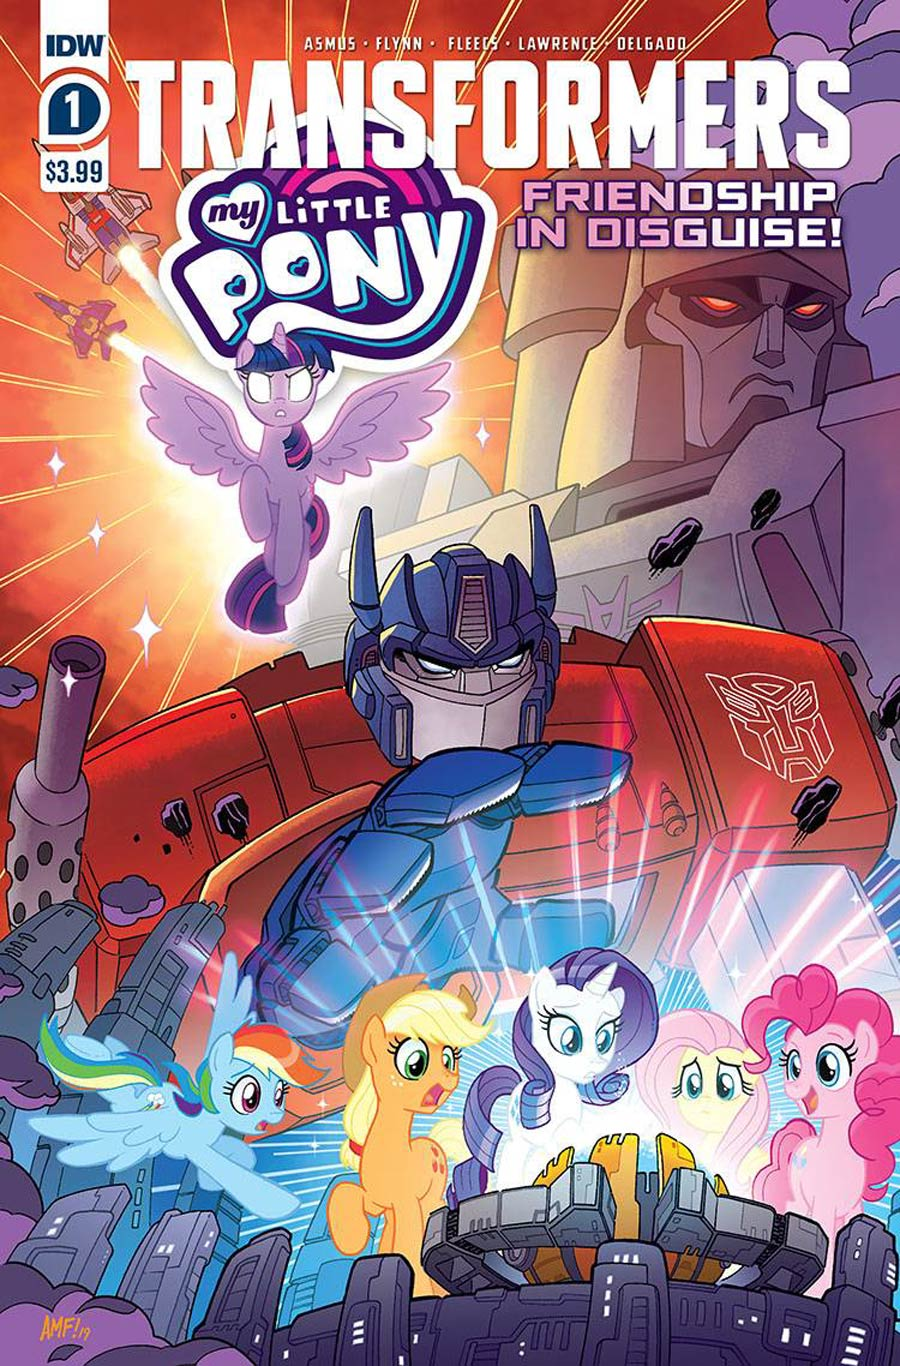 My Little Pony Transformers Friendship In Disguise #1 Cover A 1st Ptg Regular Tony Fleecs Cover